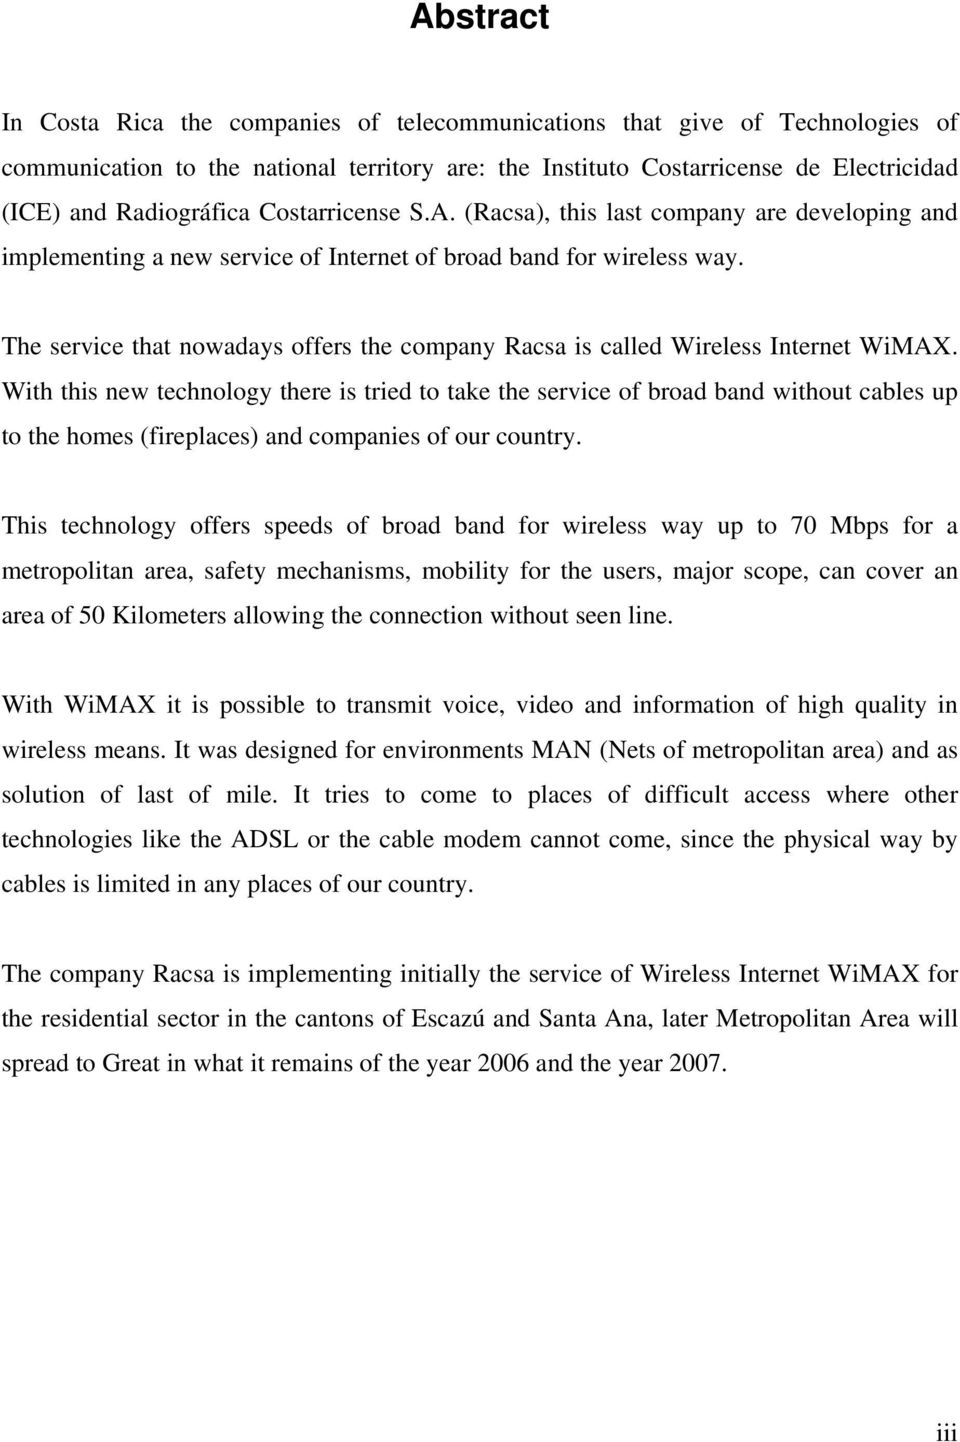 The service that nowadays offers the company Racsa is called Wireless Internet WiMAX.